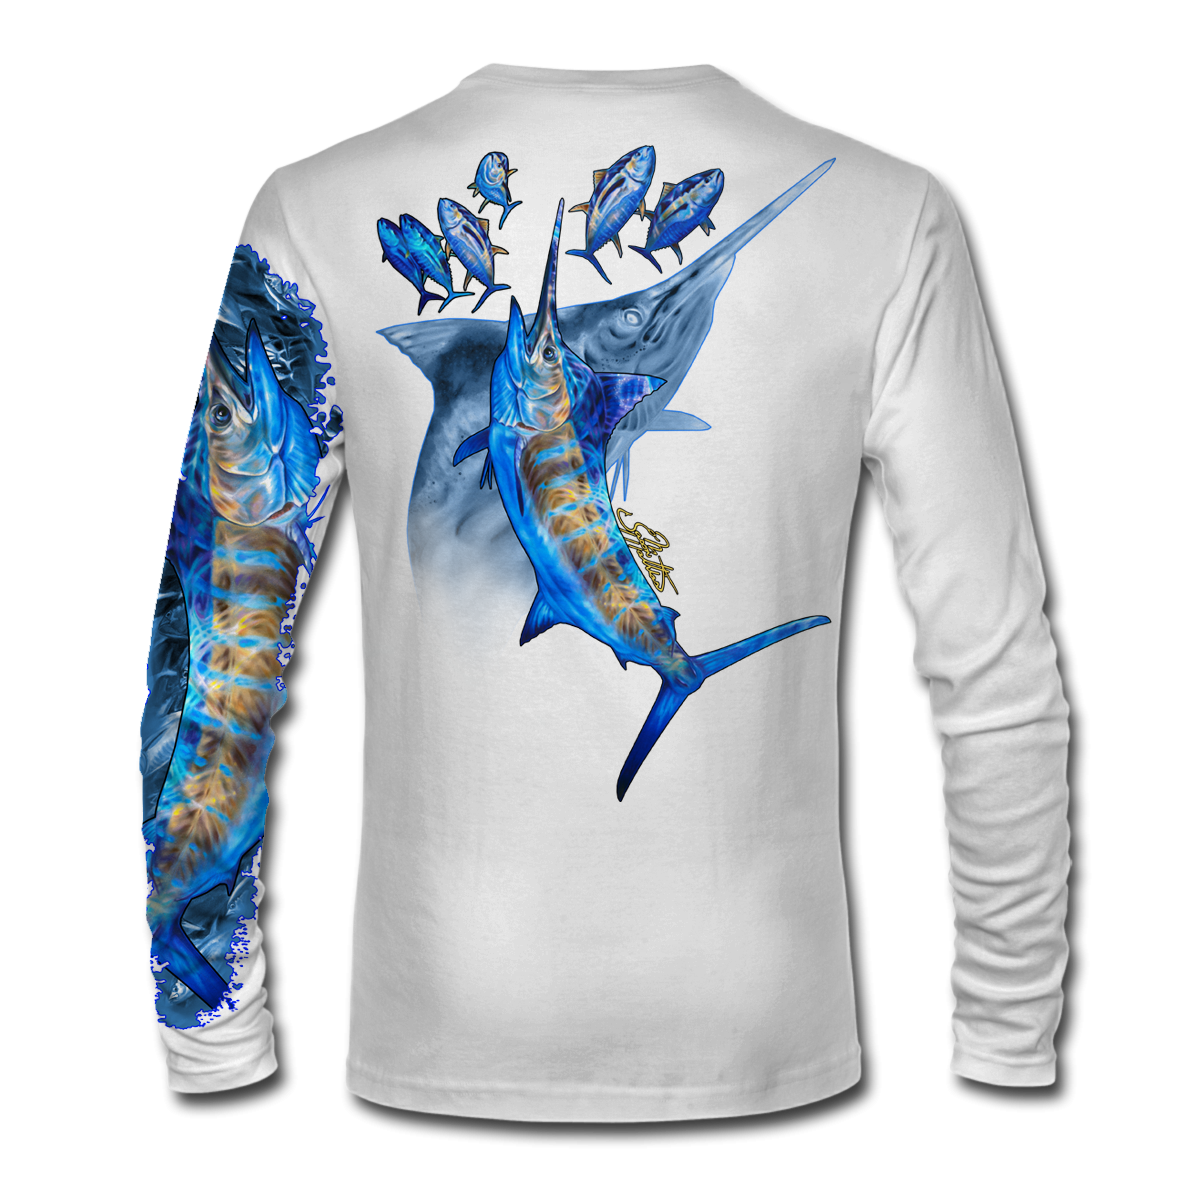 blue-marlin-it-white-shirt-jason-mathias-apparel-gear-fishing-gamefish-art-sportfish-art-tee-shirt-t-shirt-clothing.png